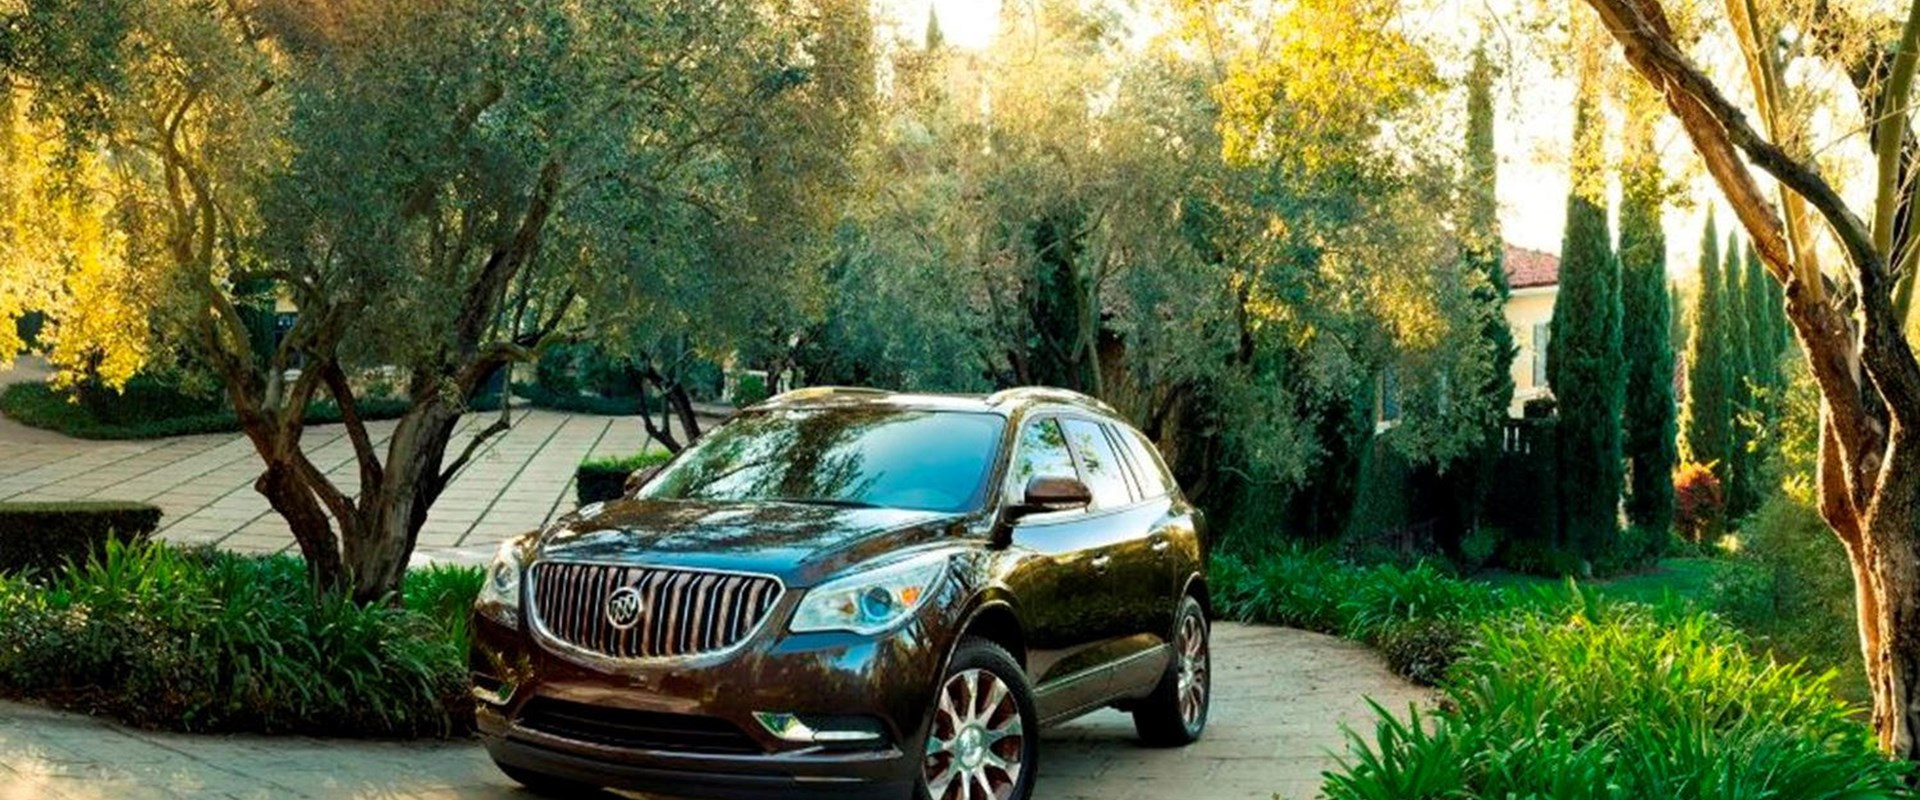 2017 Buick Enclave Suv Review Carbuzz